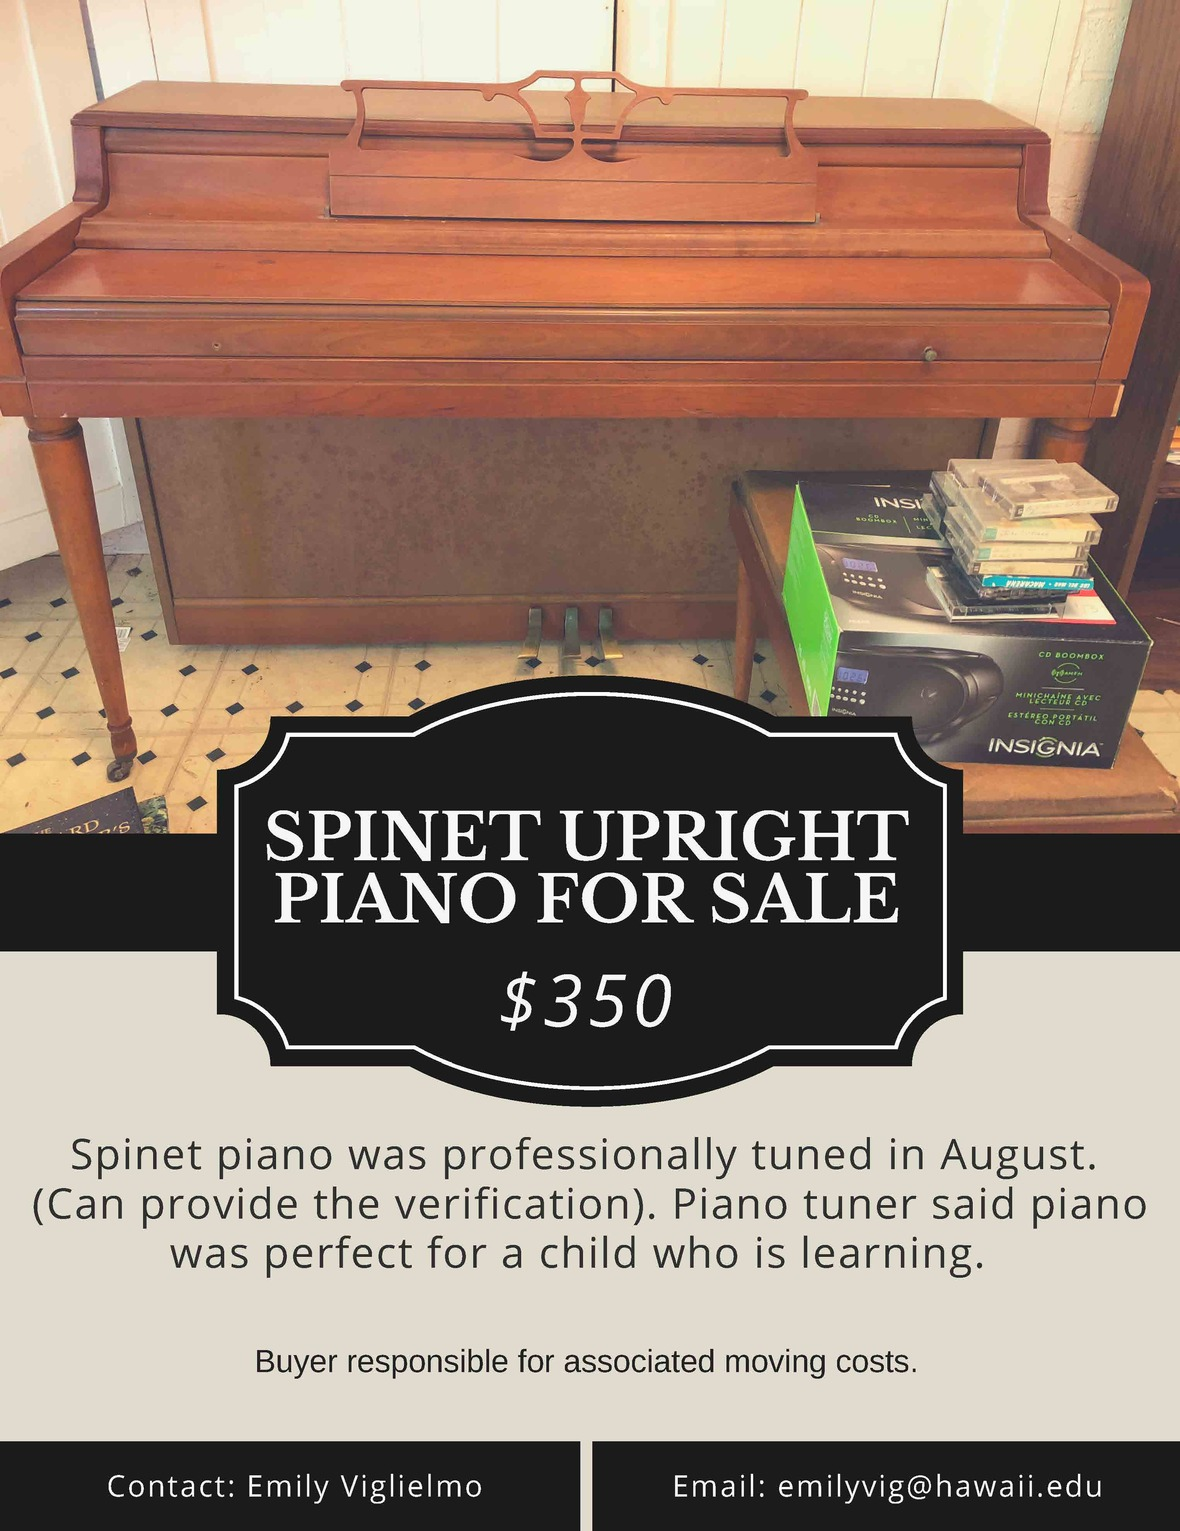 SPINET UPRIGHT PIANO FOR SALE